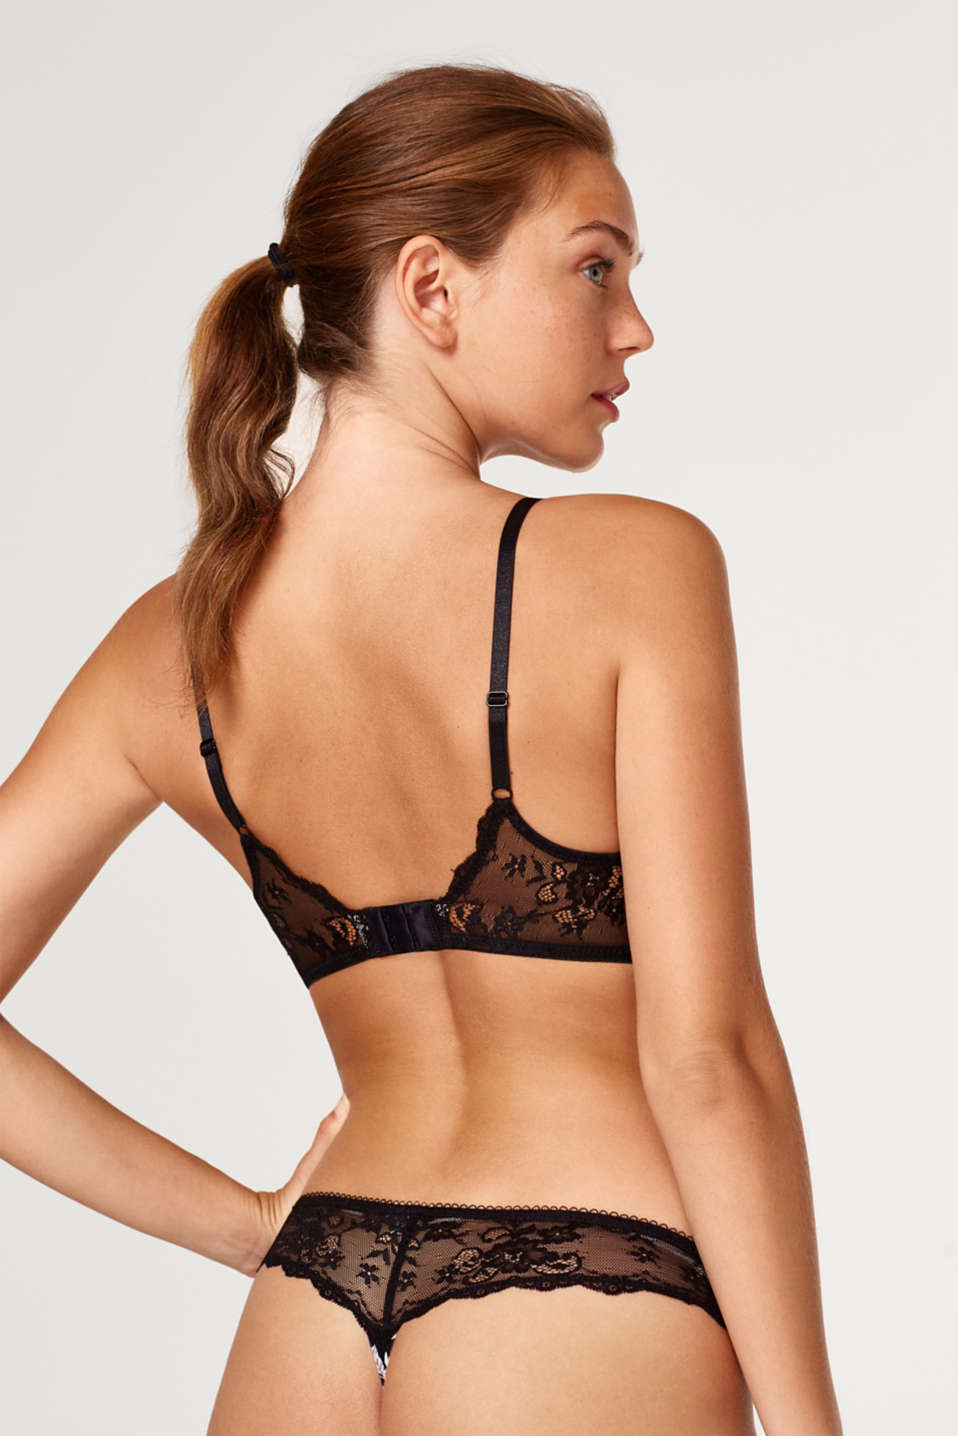 Padded non-wired bra with print and lace